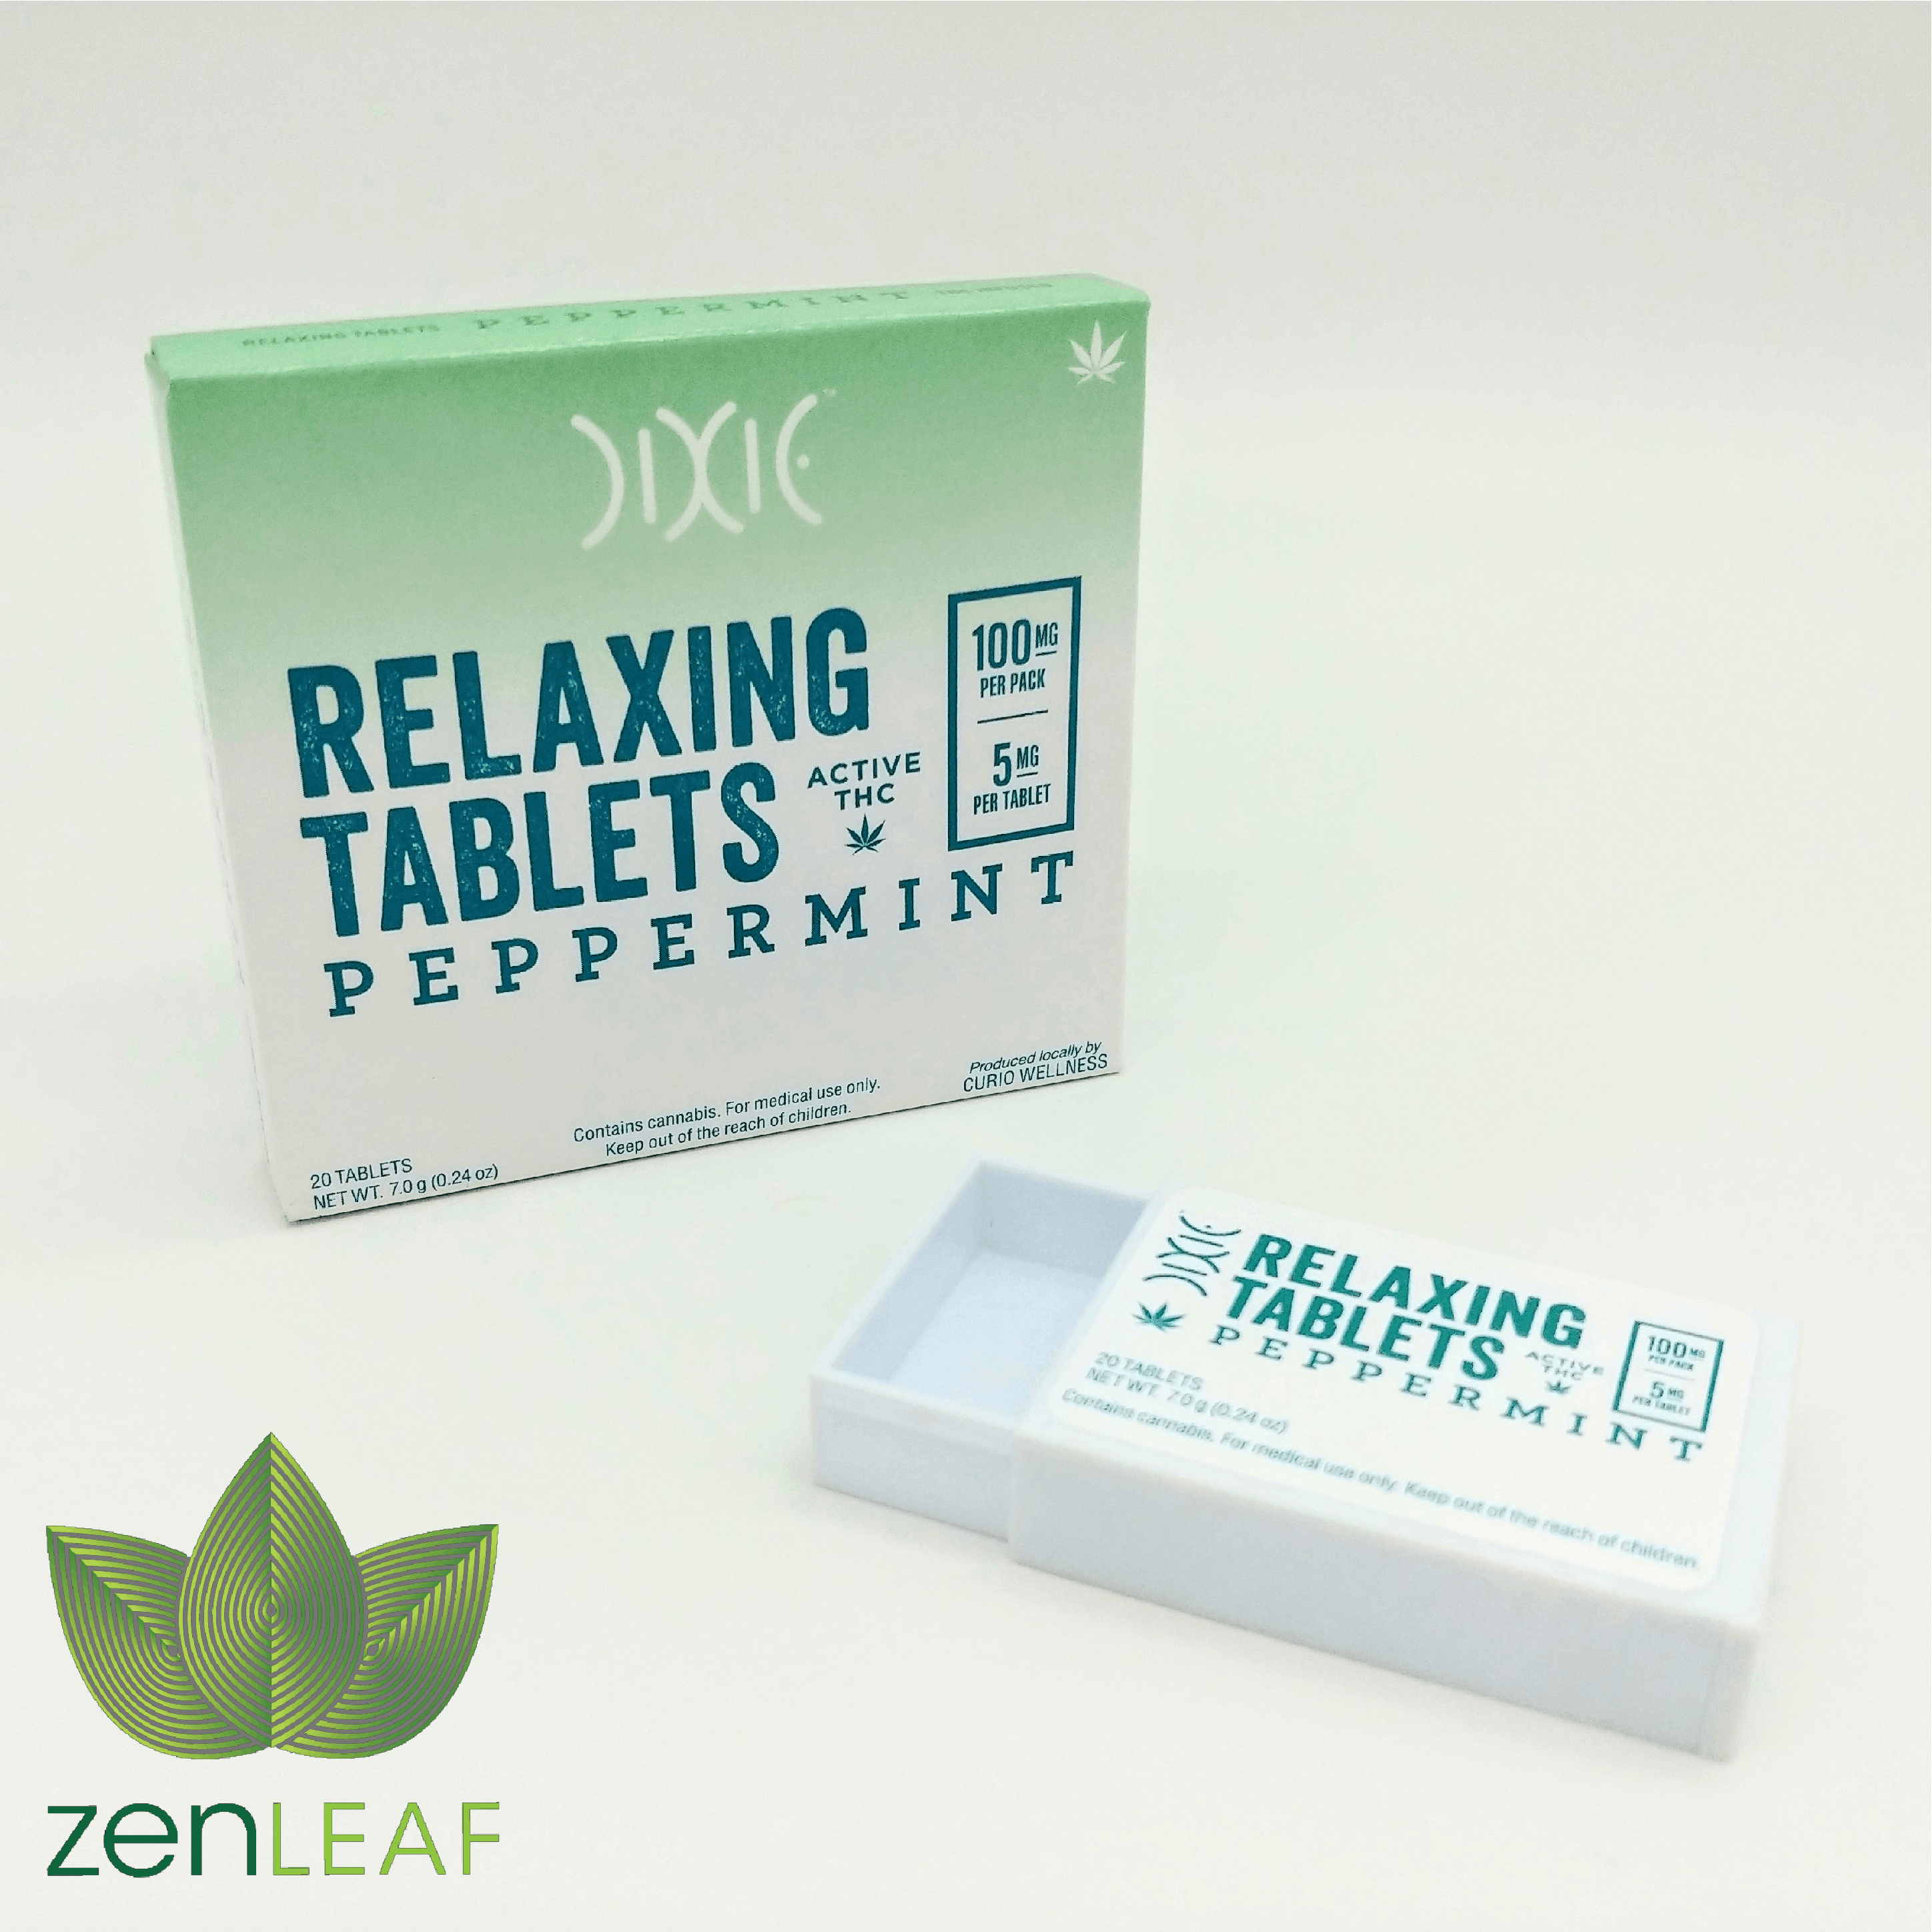 Dixie Relaxing Tablets (Peppermint) - 100mg